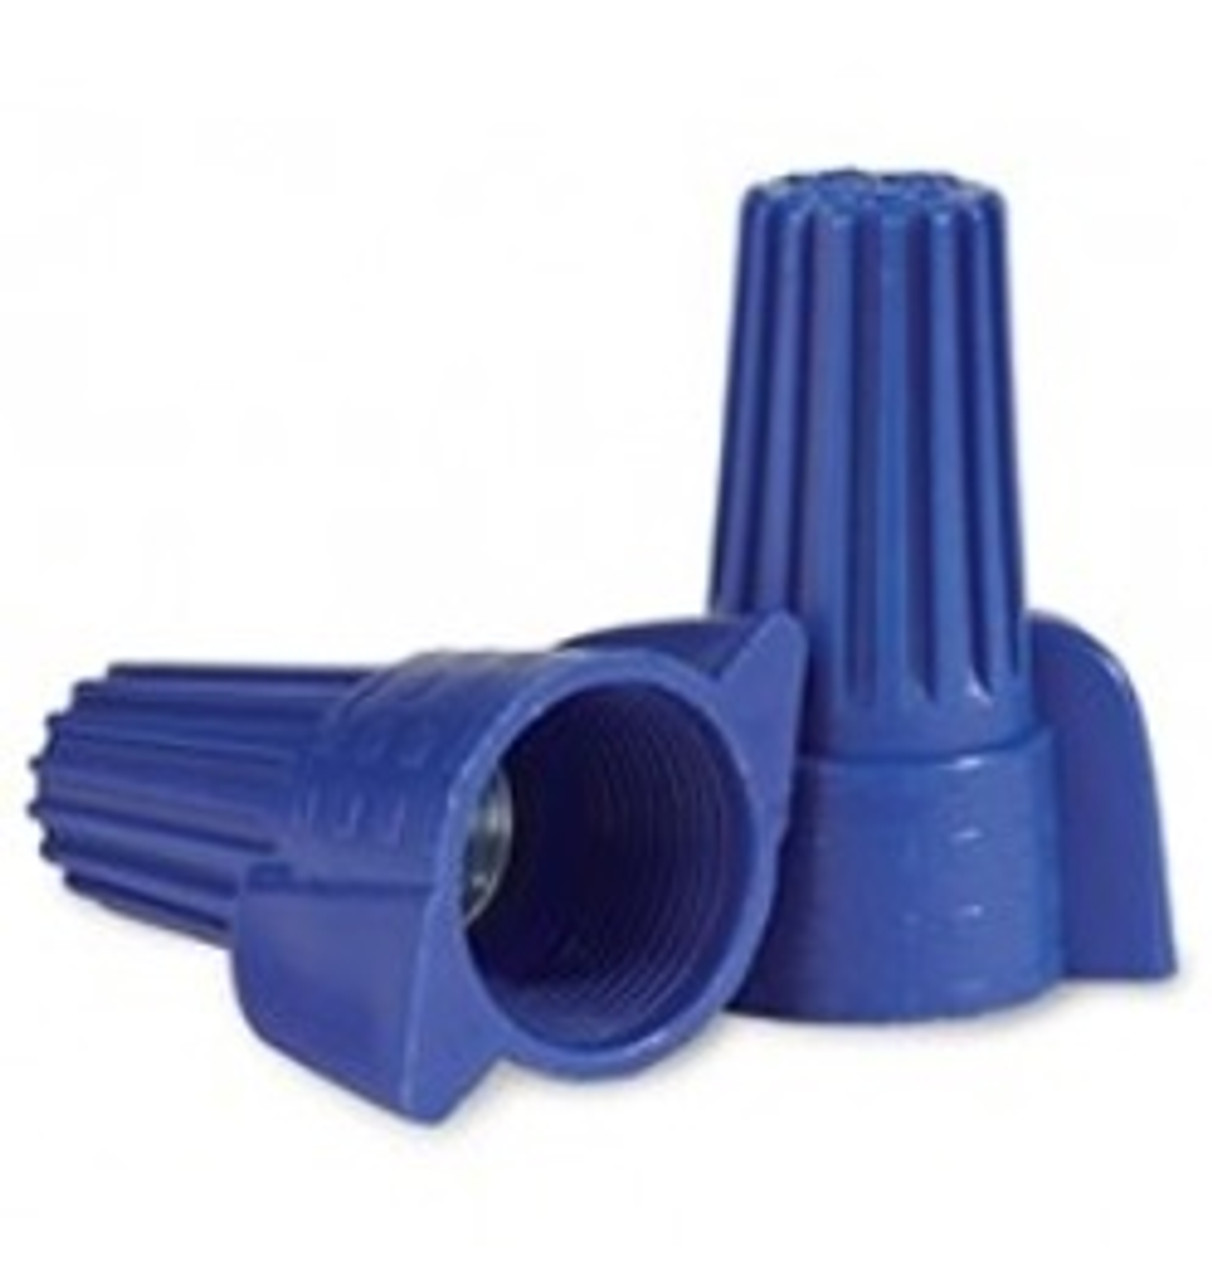 BLUE WING WIRE NUT CONNECTOR-25 PACK